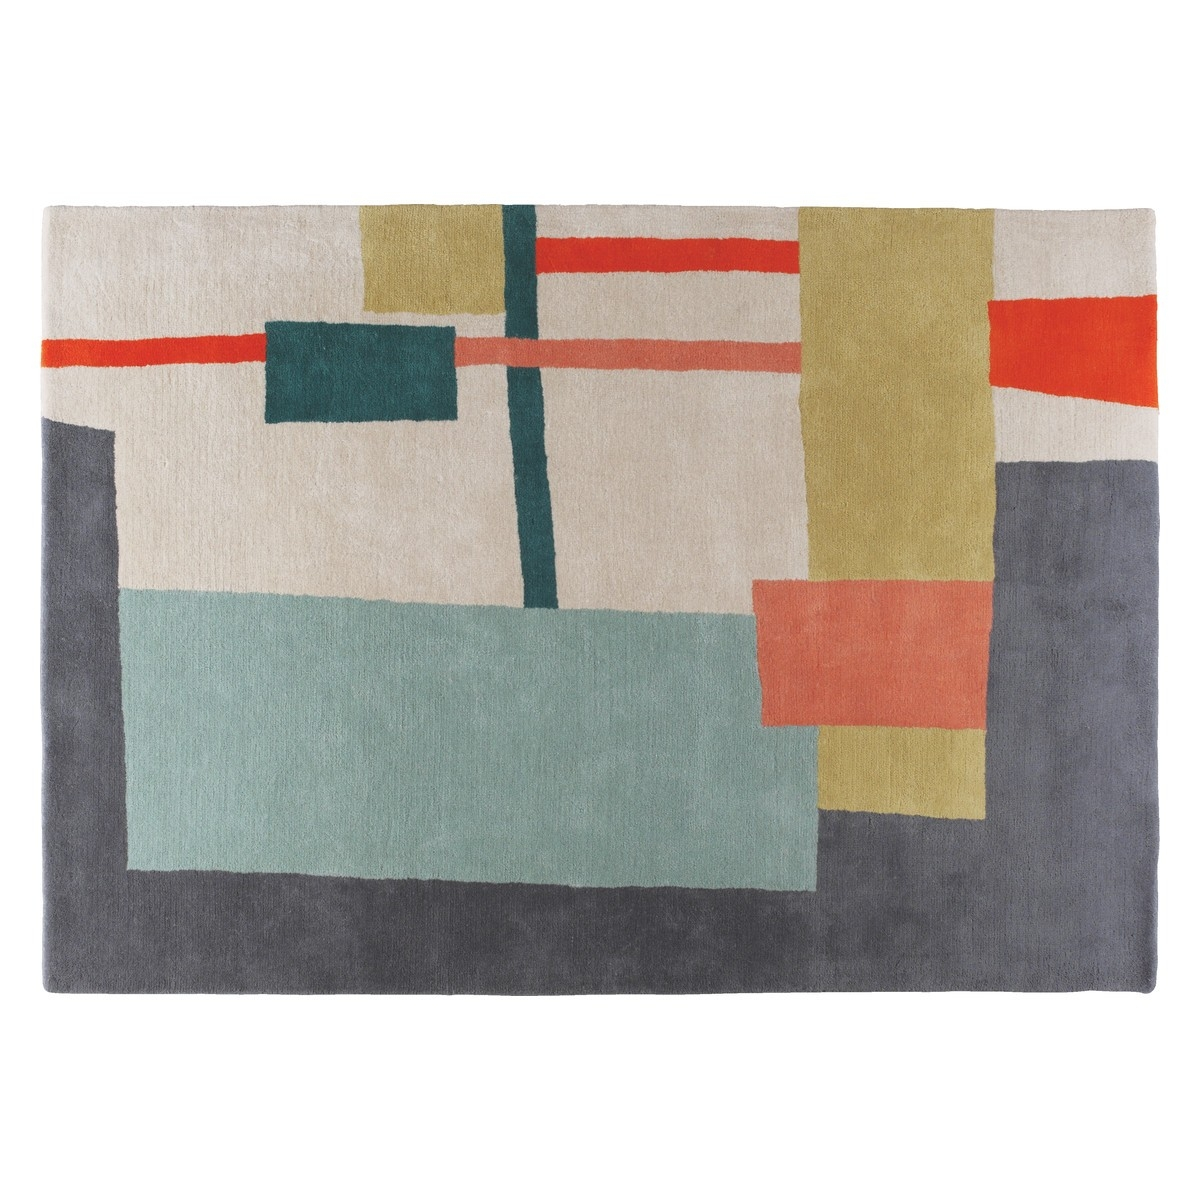 Quentin Large Multi Coloured Wool Rug 170 X 240cm Buy Now At Pertaining To Multicoloured Wool Rugs (Photo 7 of 15)